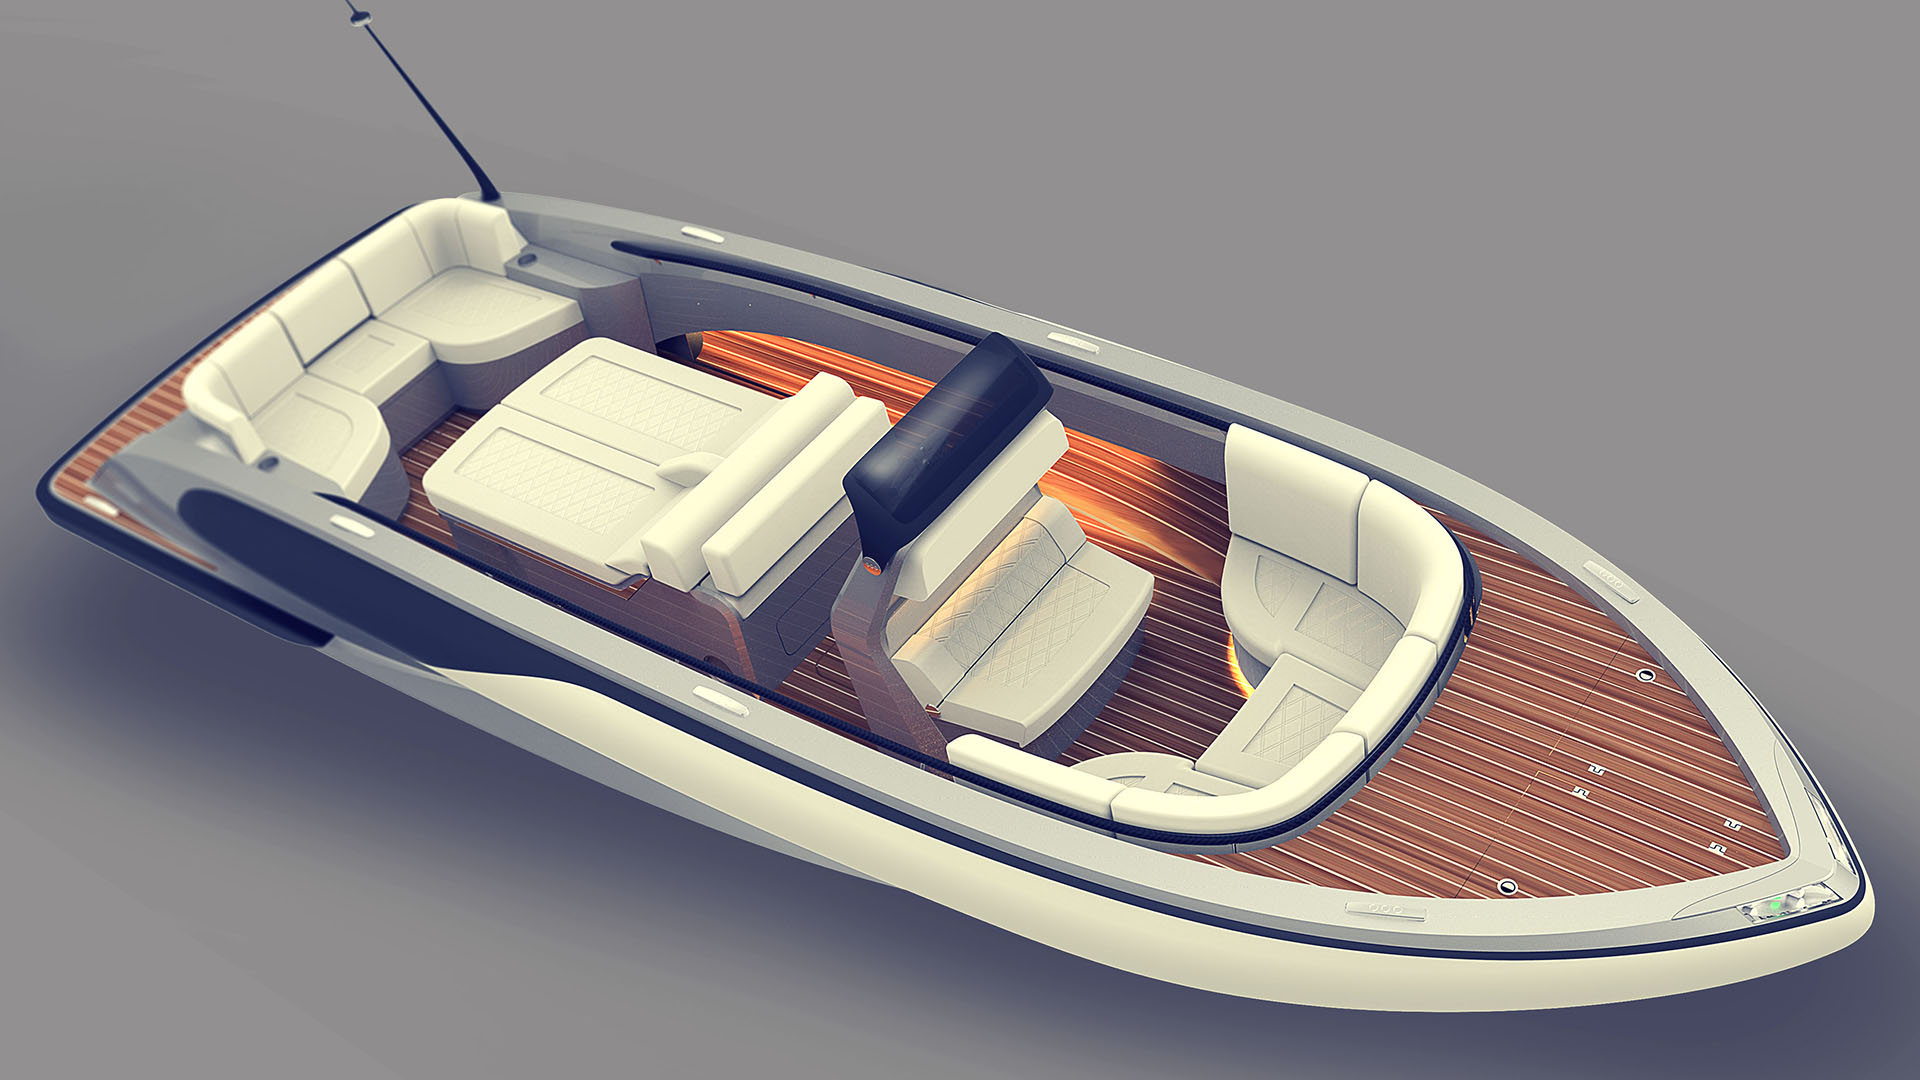 Rib boat tender yacht design by Hamid Bekradi